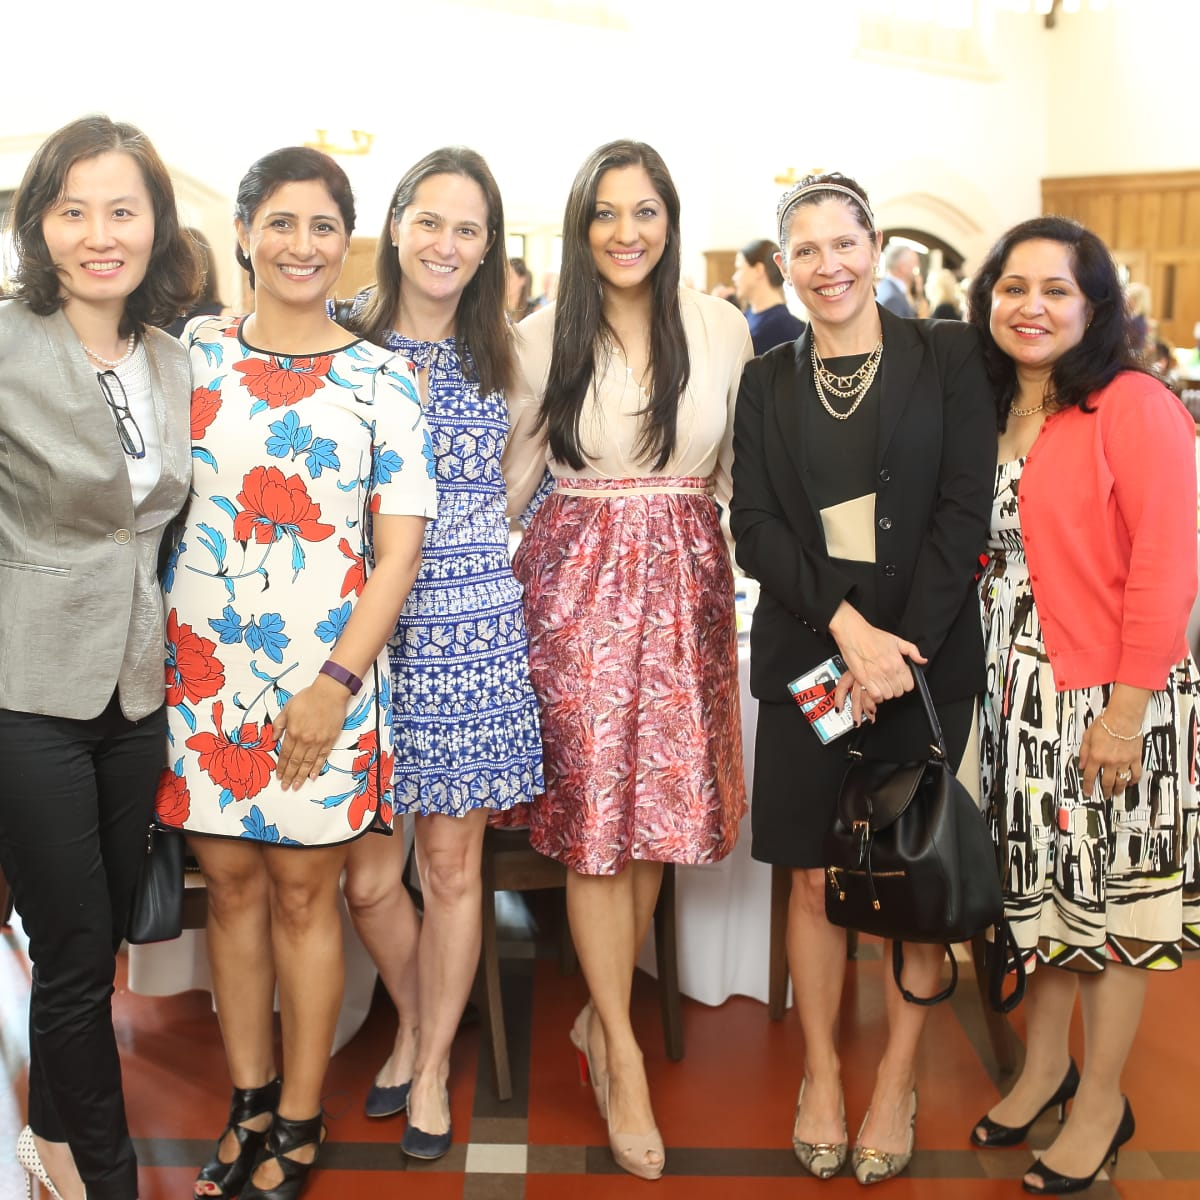 Breakthrough Houston, March 2016, Janice Nicholson_Yao Shen_Preity Bhagia_Pery Shure, Sippi Khurana, Michelle Miller, Nita Singhal